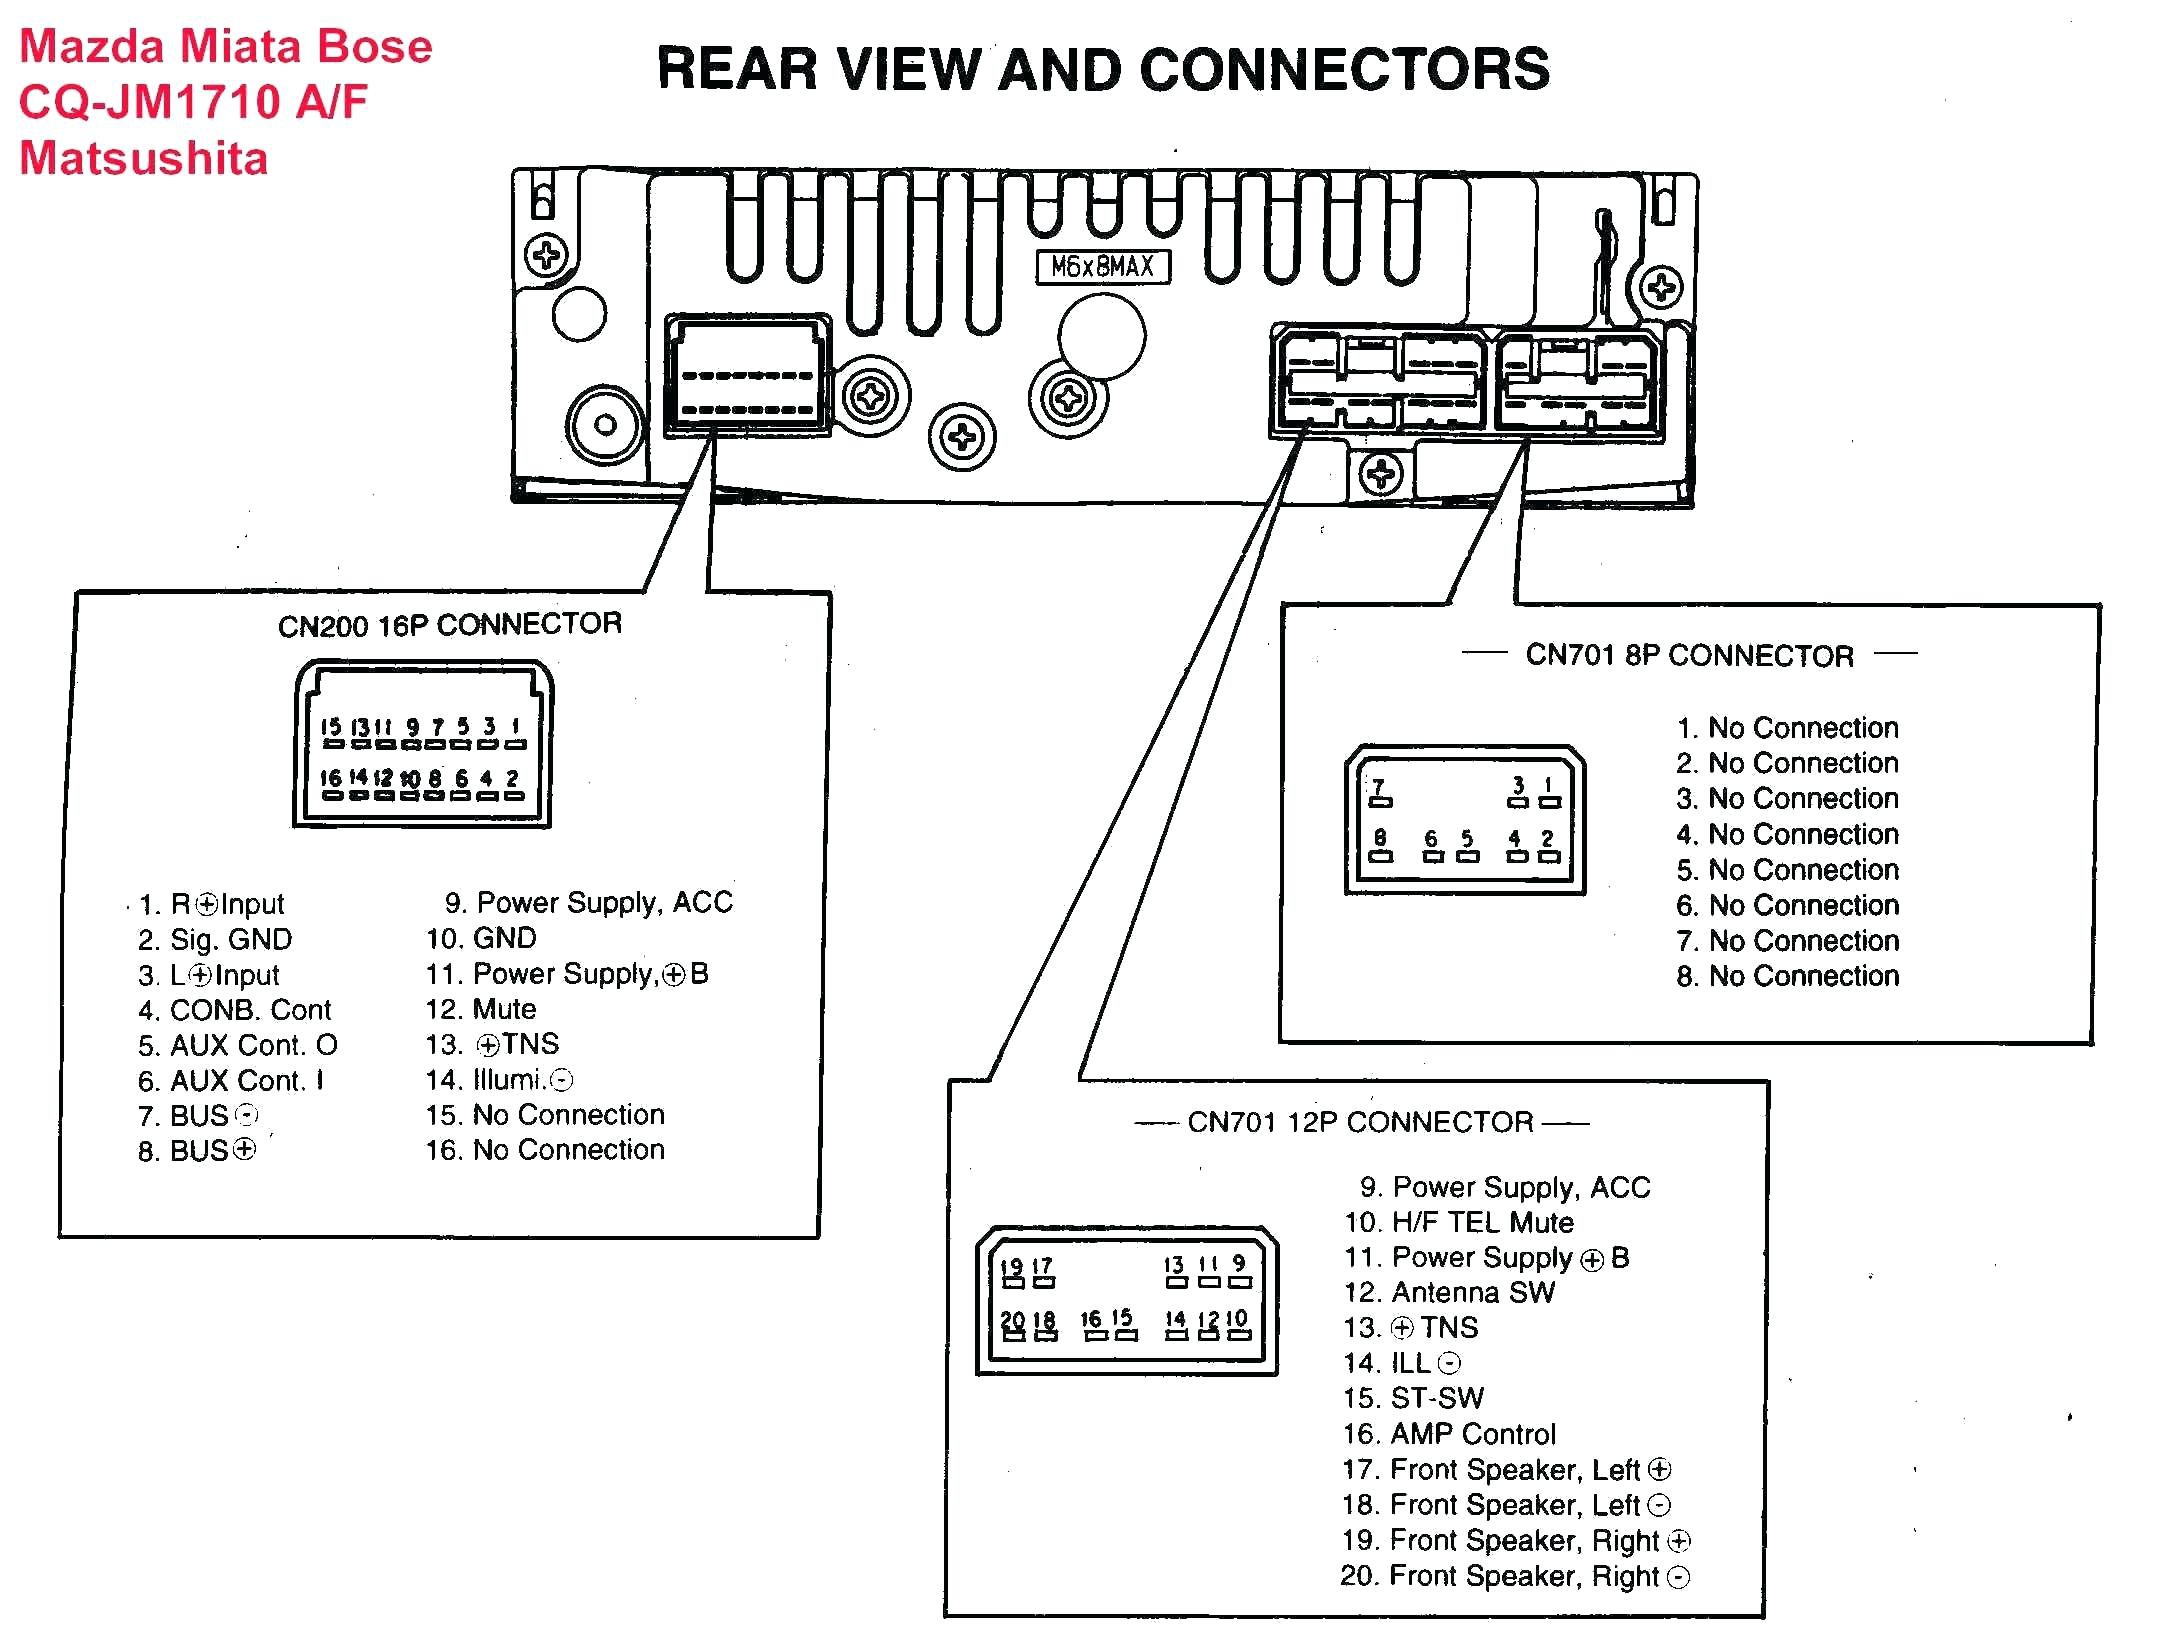 Car Stereo 16 Pin Wiring Diagram Moreover Sony Xplod 1969 Datsun 1600 Cdx For Radio Rh Dbatuonline Co